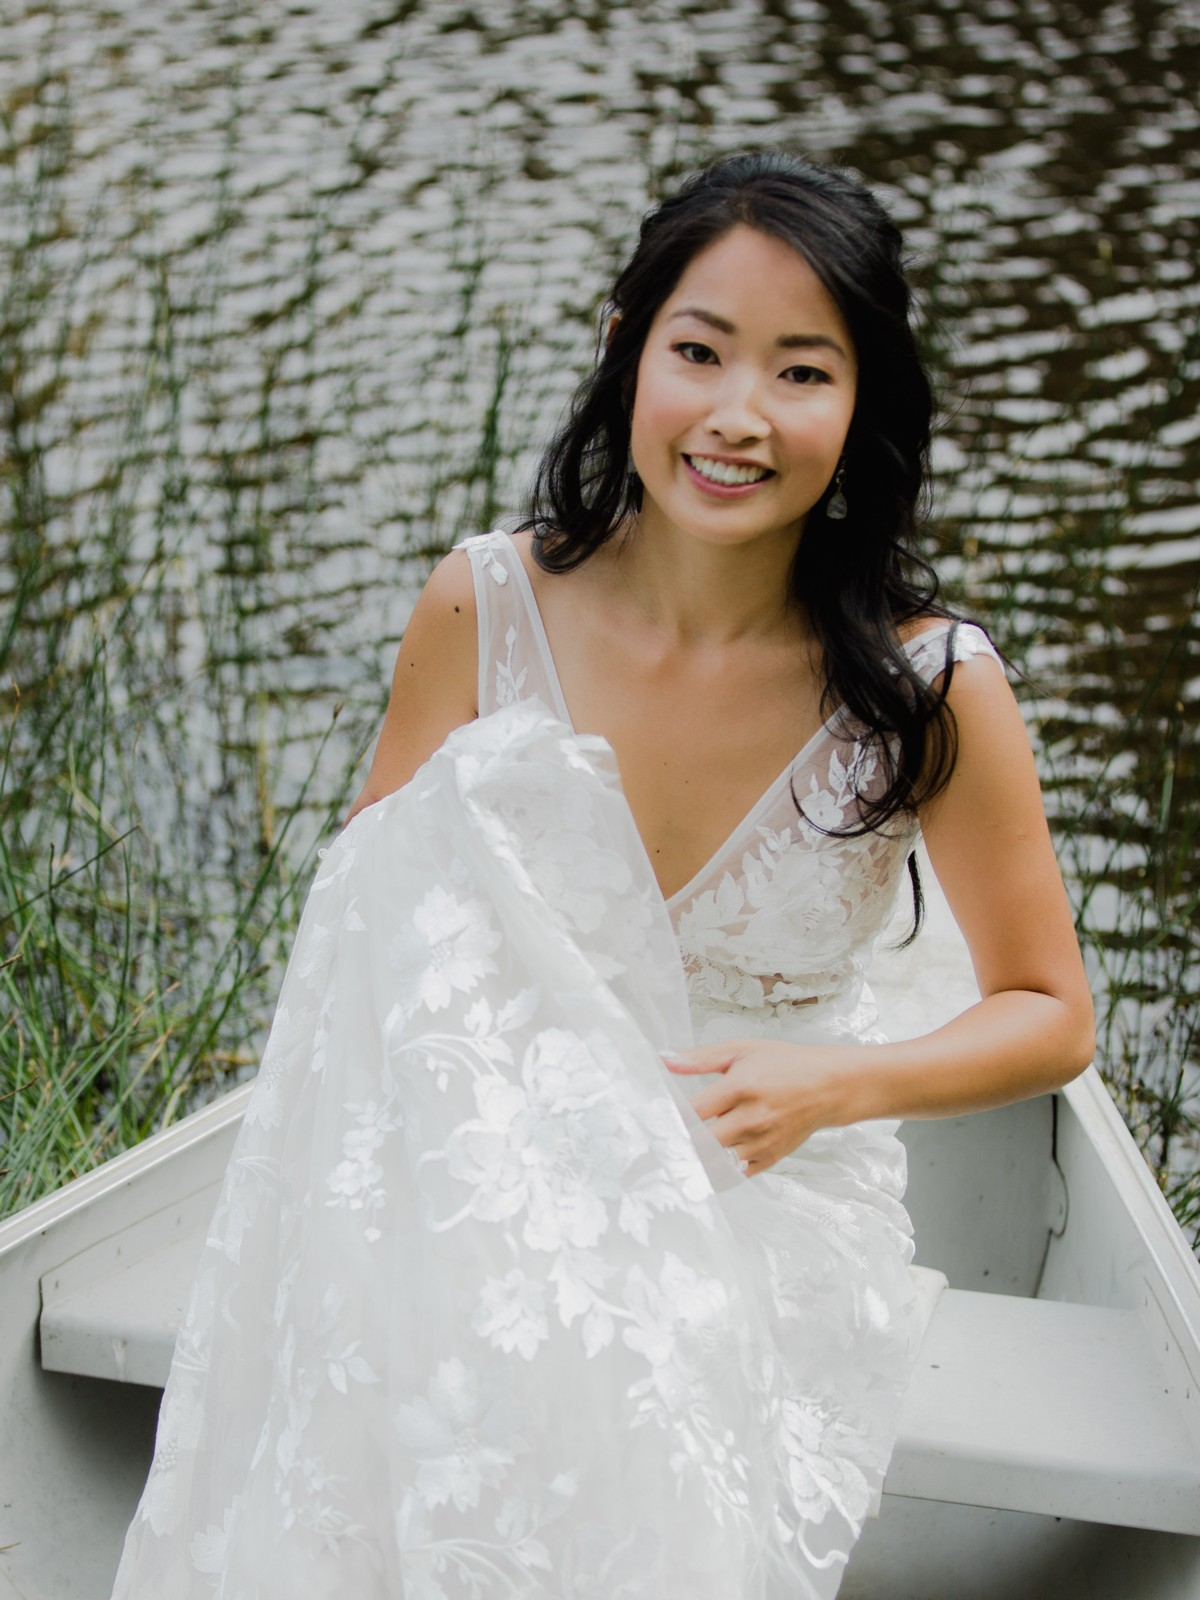 Bride looks fresh after hair and makeup by Love Is In The Hair Lake Tahoe wedding